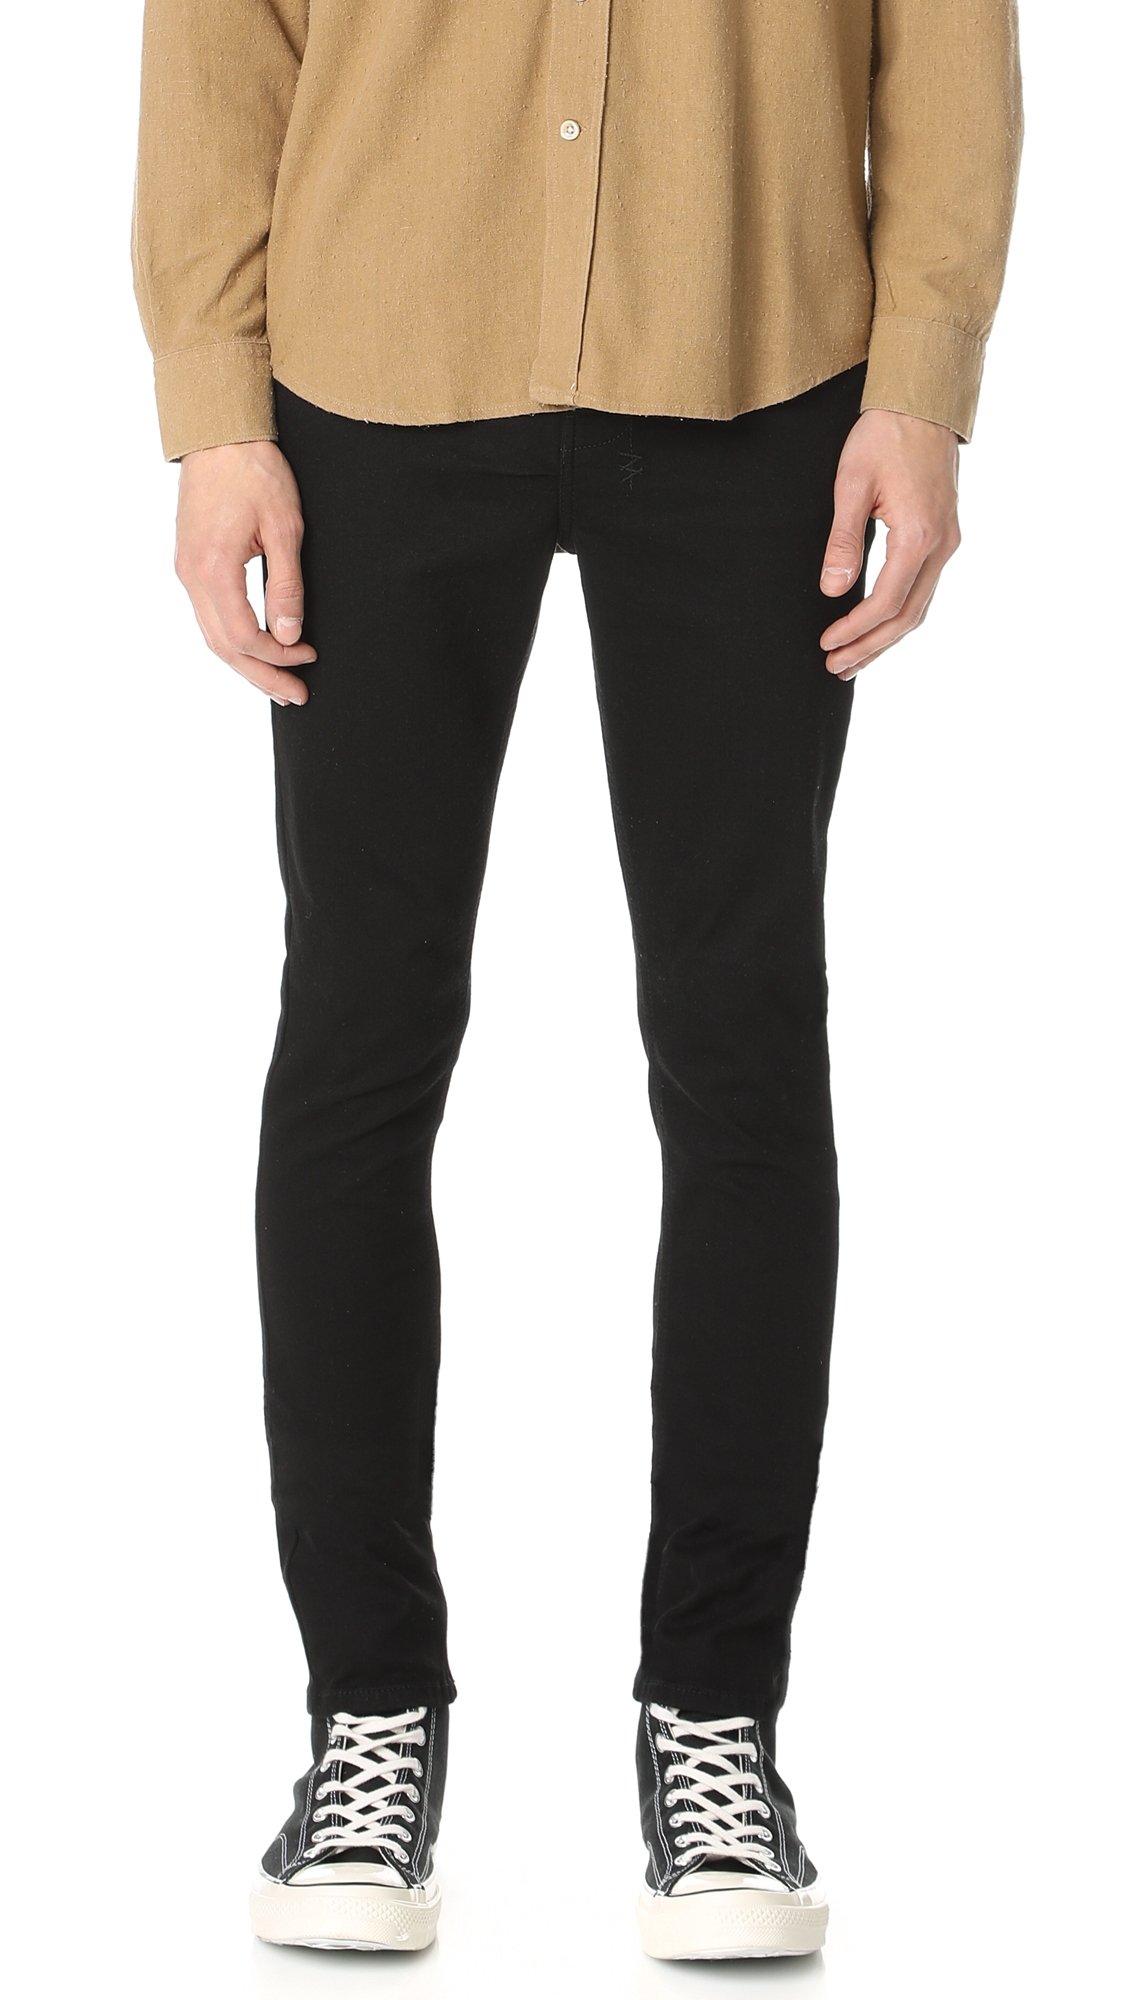 Chitch Laid Black Jeans